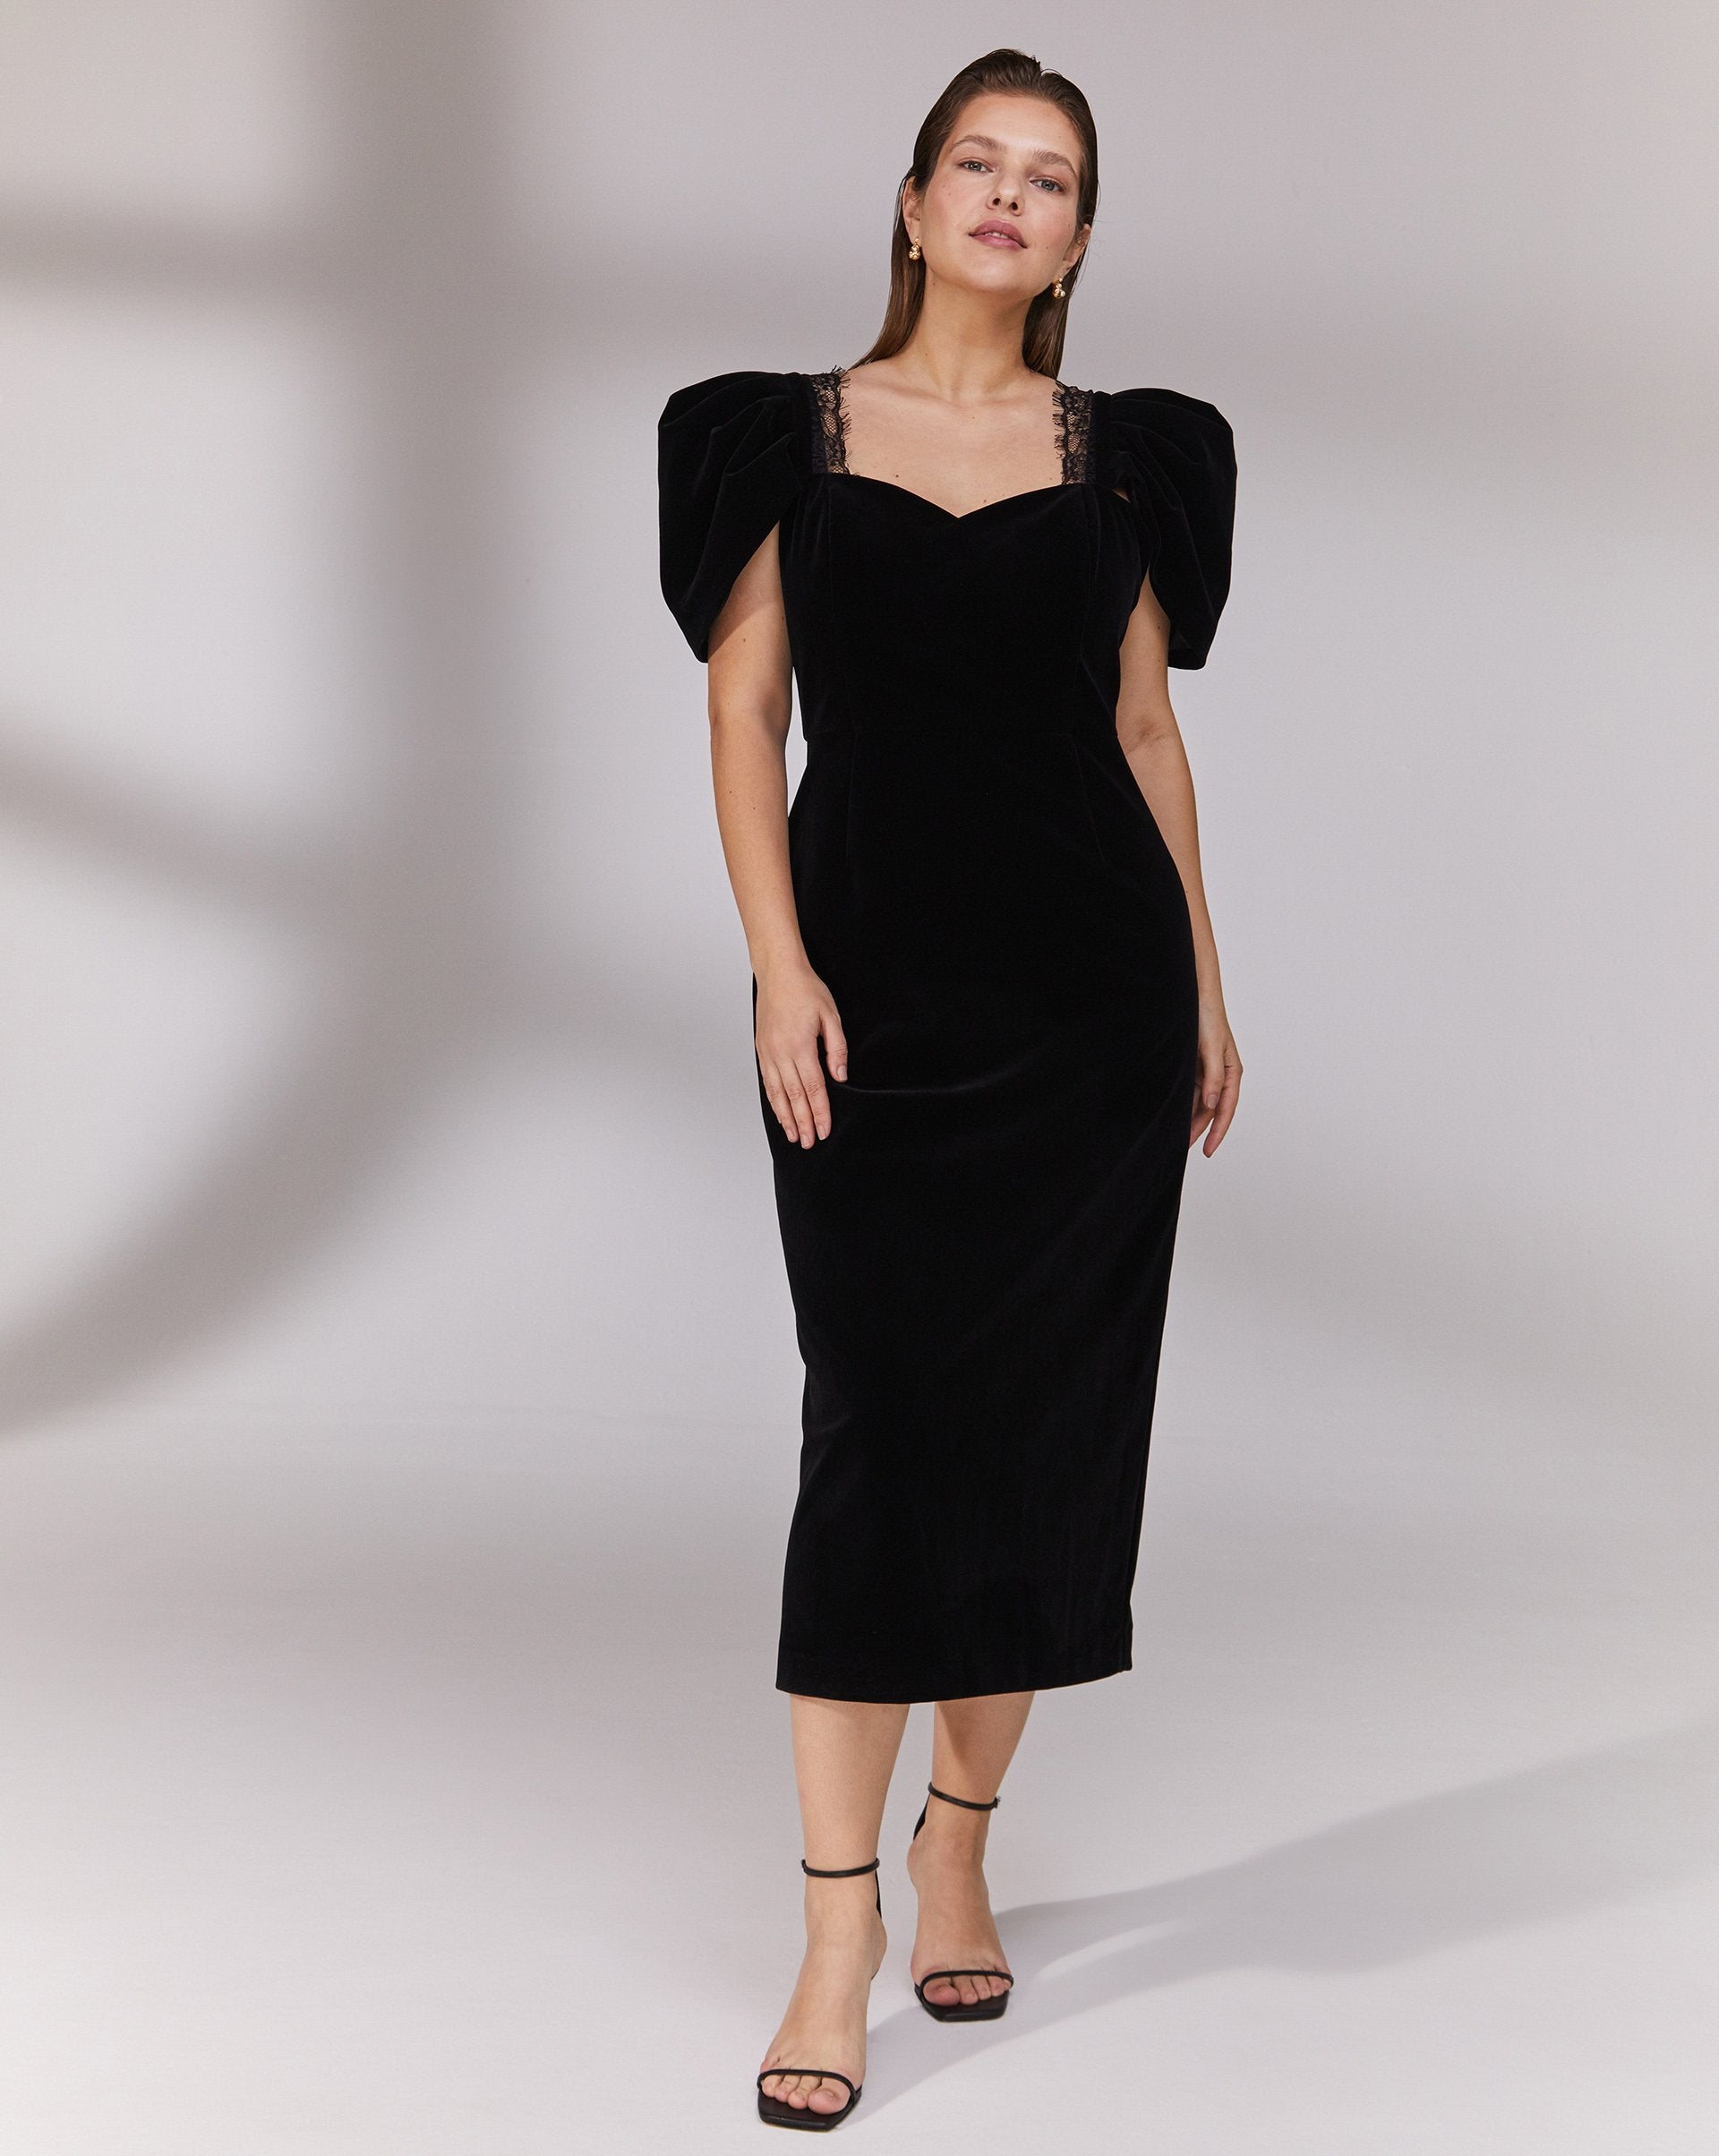 Puff sleeve velvet midi dress - 12 STOREEZ